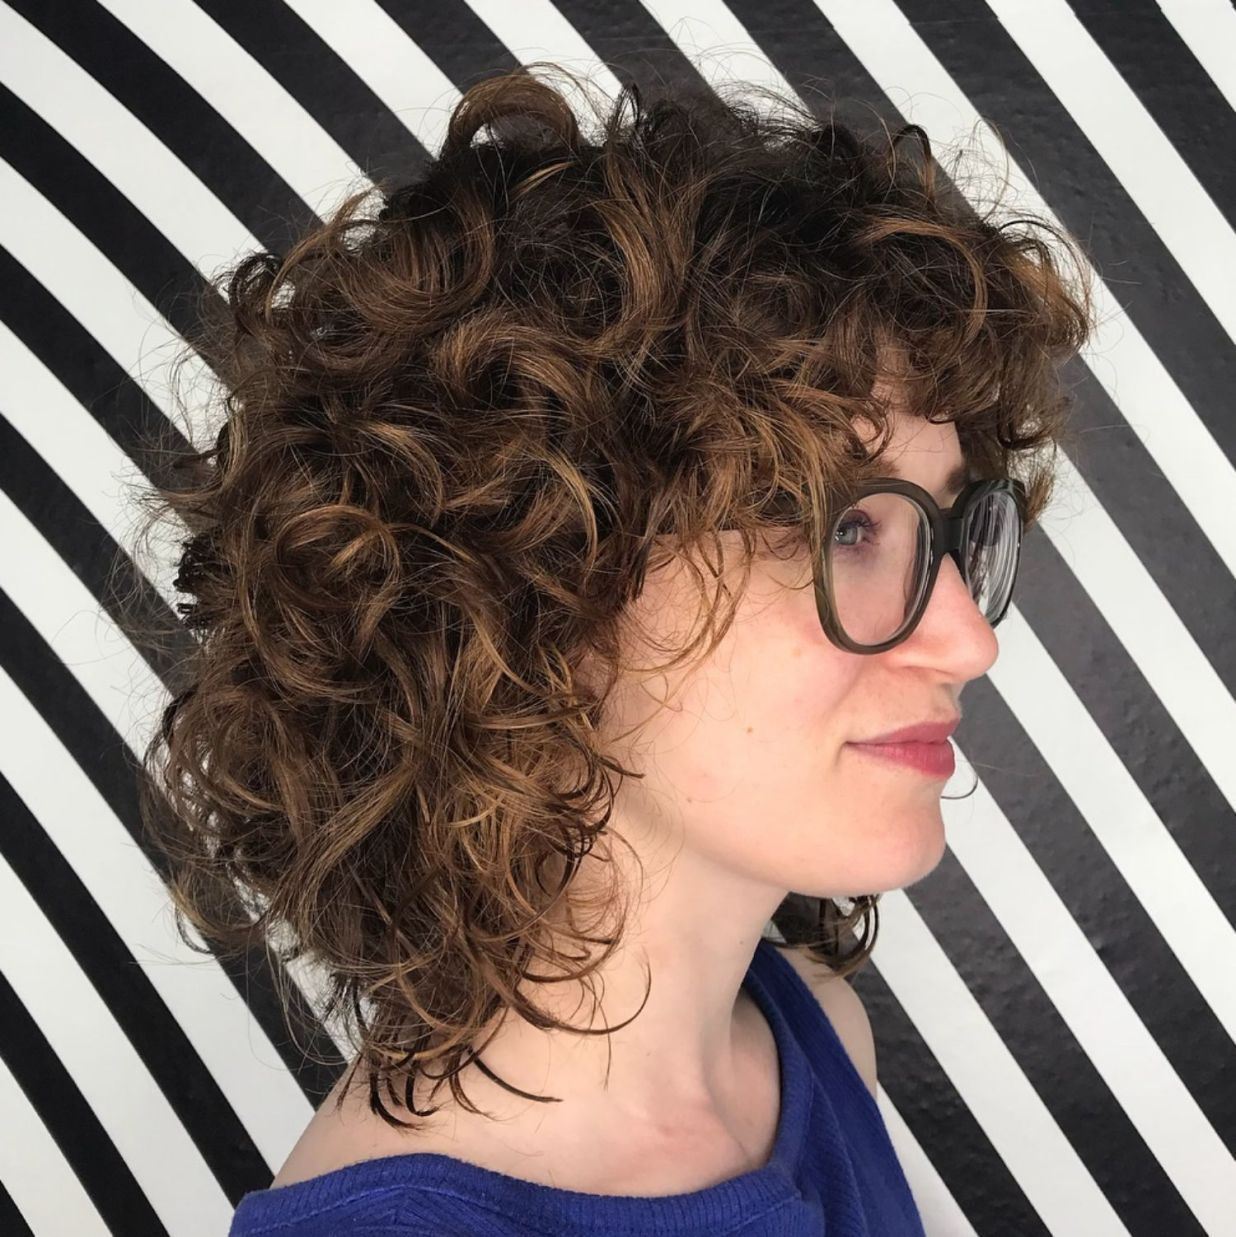 Mid-Length Layered Hairstyle With Large Curls